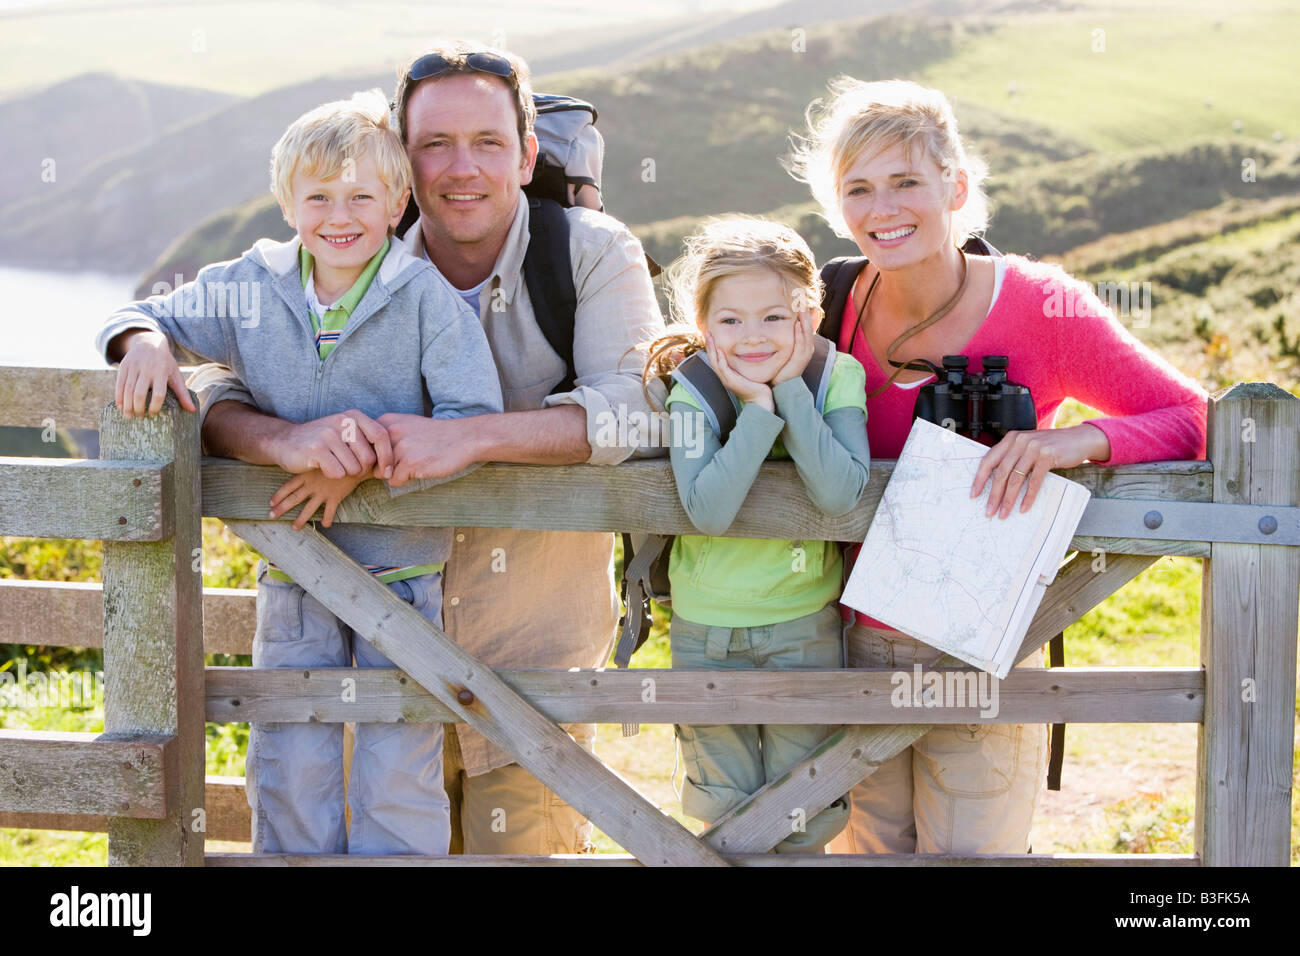 Famille le chemin cliffside leaning on fence and smiling Photo Stock